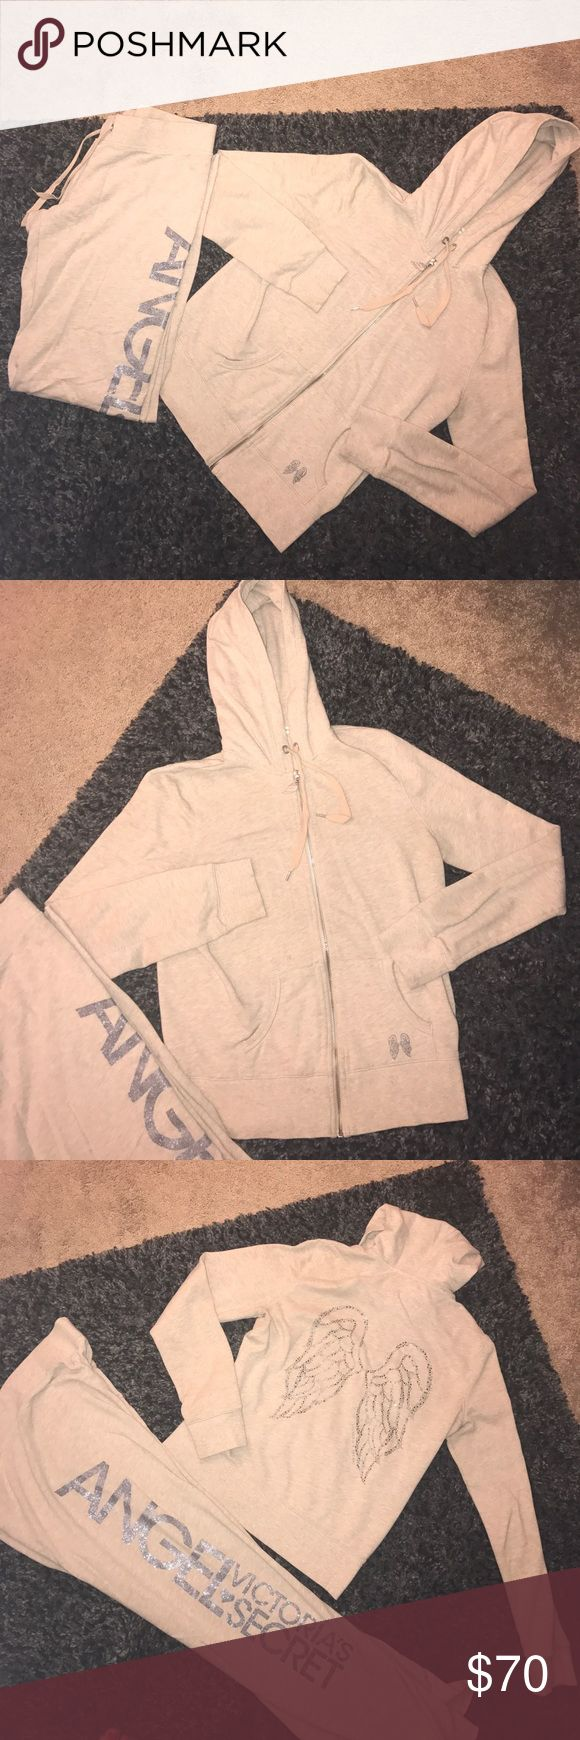 Victoria's Secret set Zip up hoodie and sweat pants set from Victoria's Secret. Beige color with chrome silver embellishments. Wore acouple times but still in great condition no flaws. Size small sweatpants and size medium top. I'd prefer to sell together but can sell separate if you want Victoria's Secret Tops Sweatshirts & Hoodies